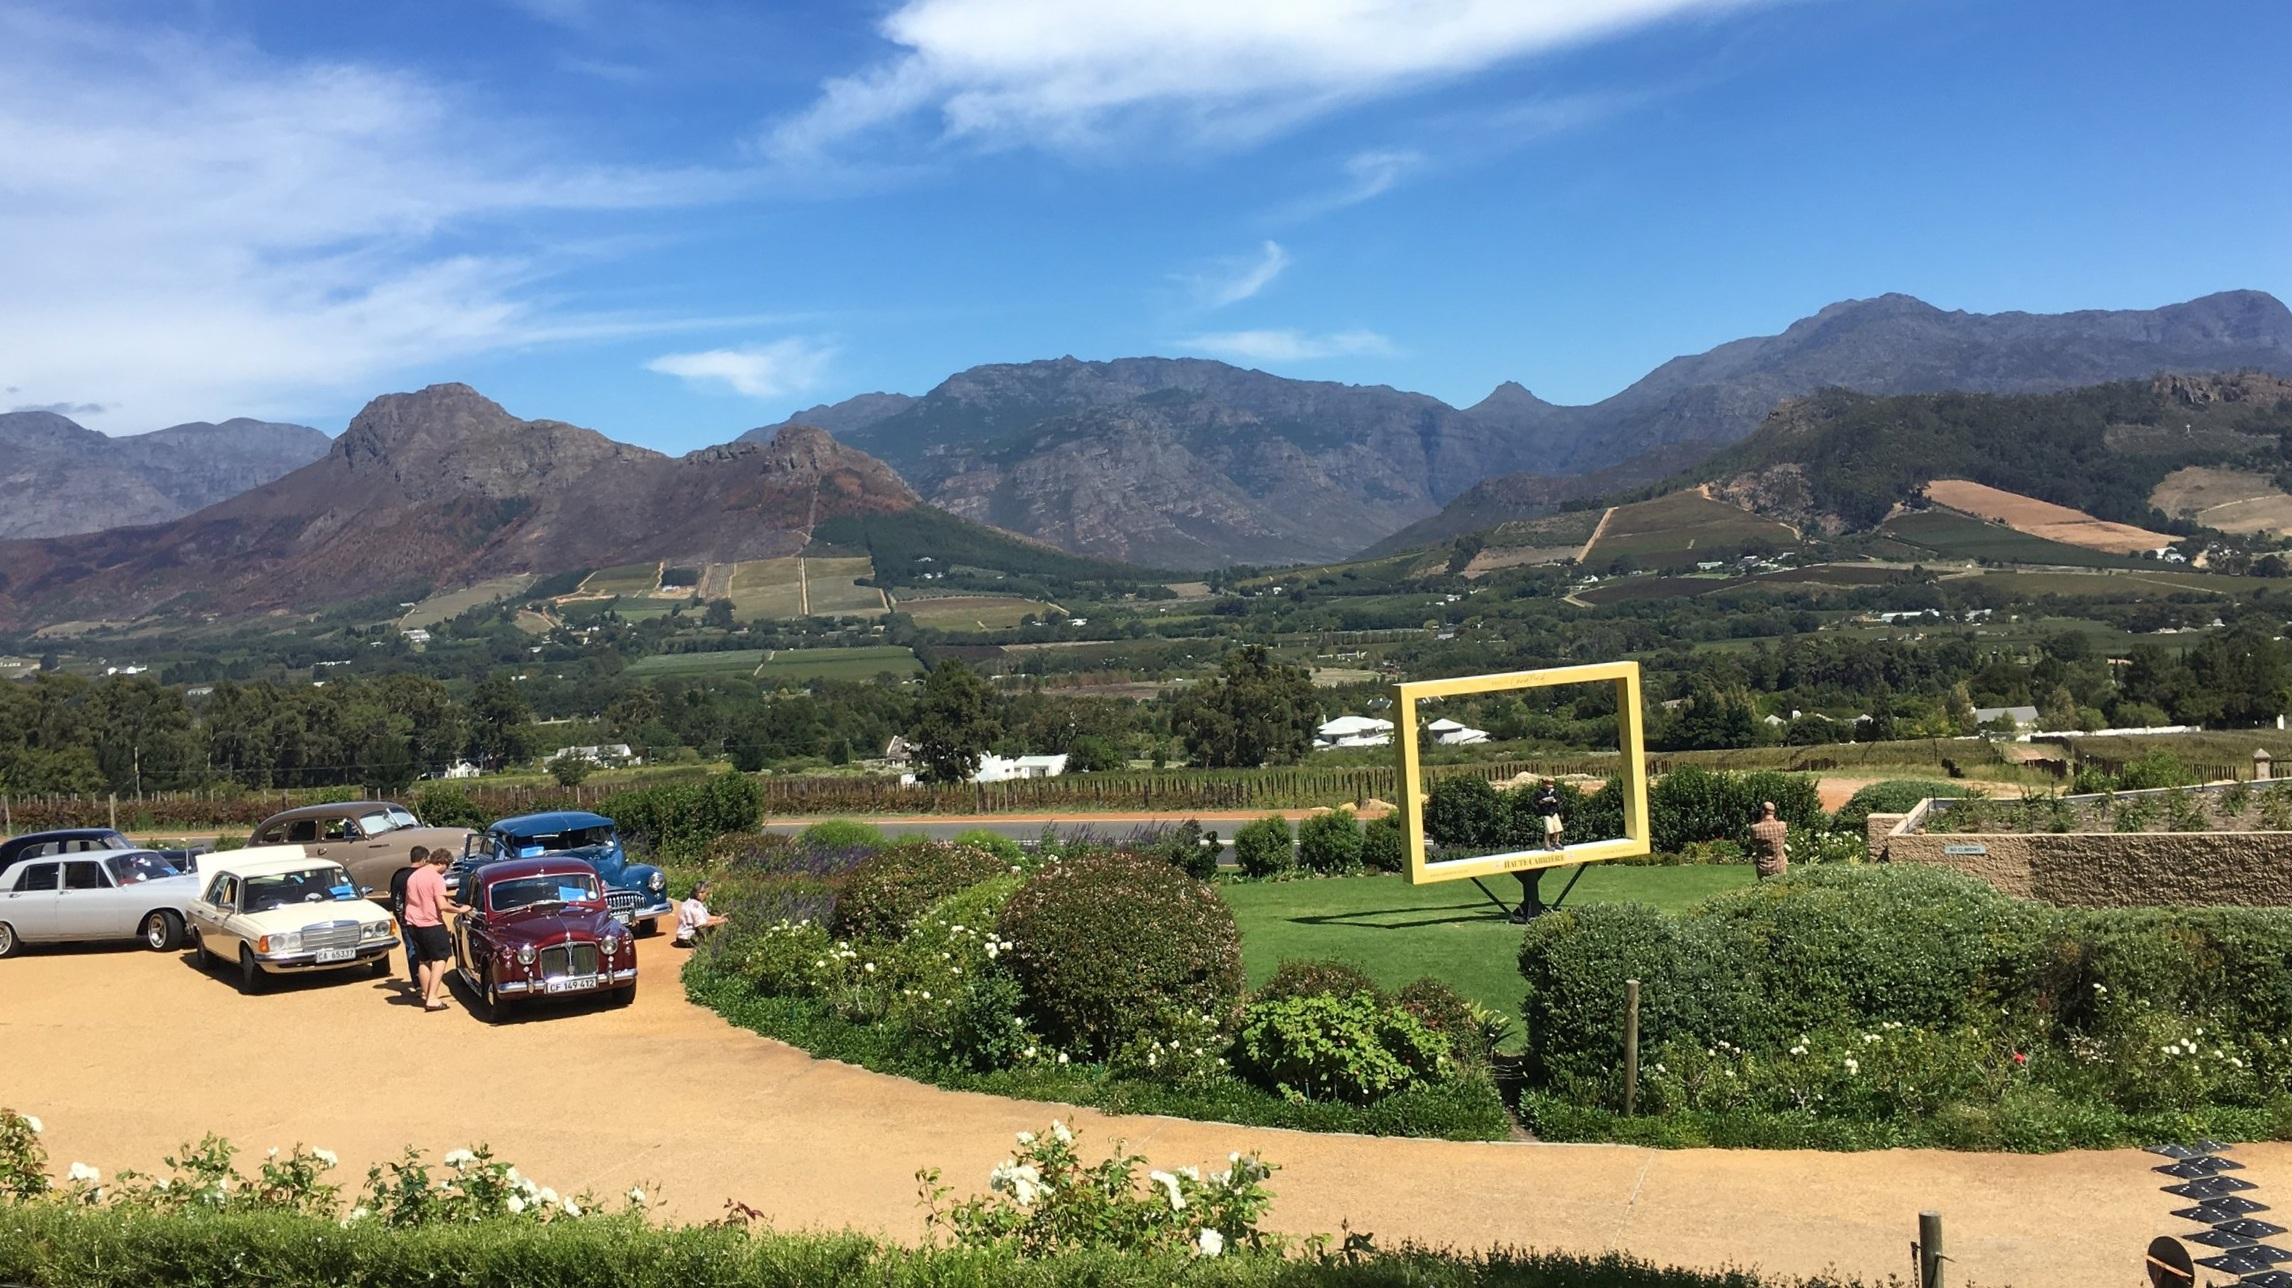 The first winery we visited. I didn't catch the name of the place, but it had the best views by far.